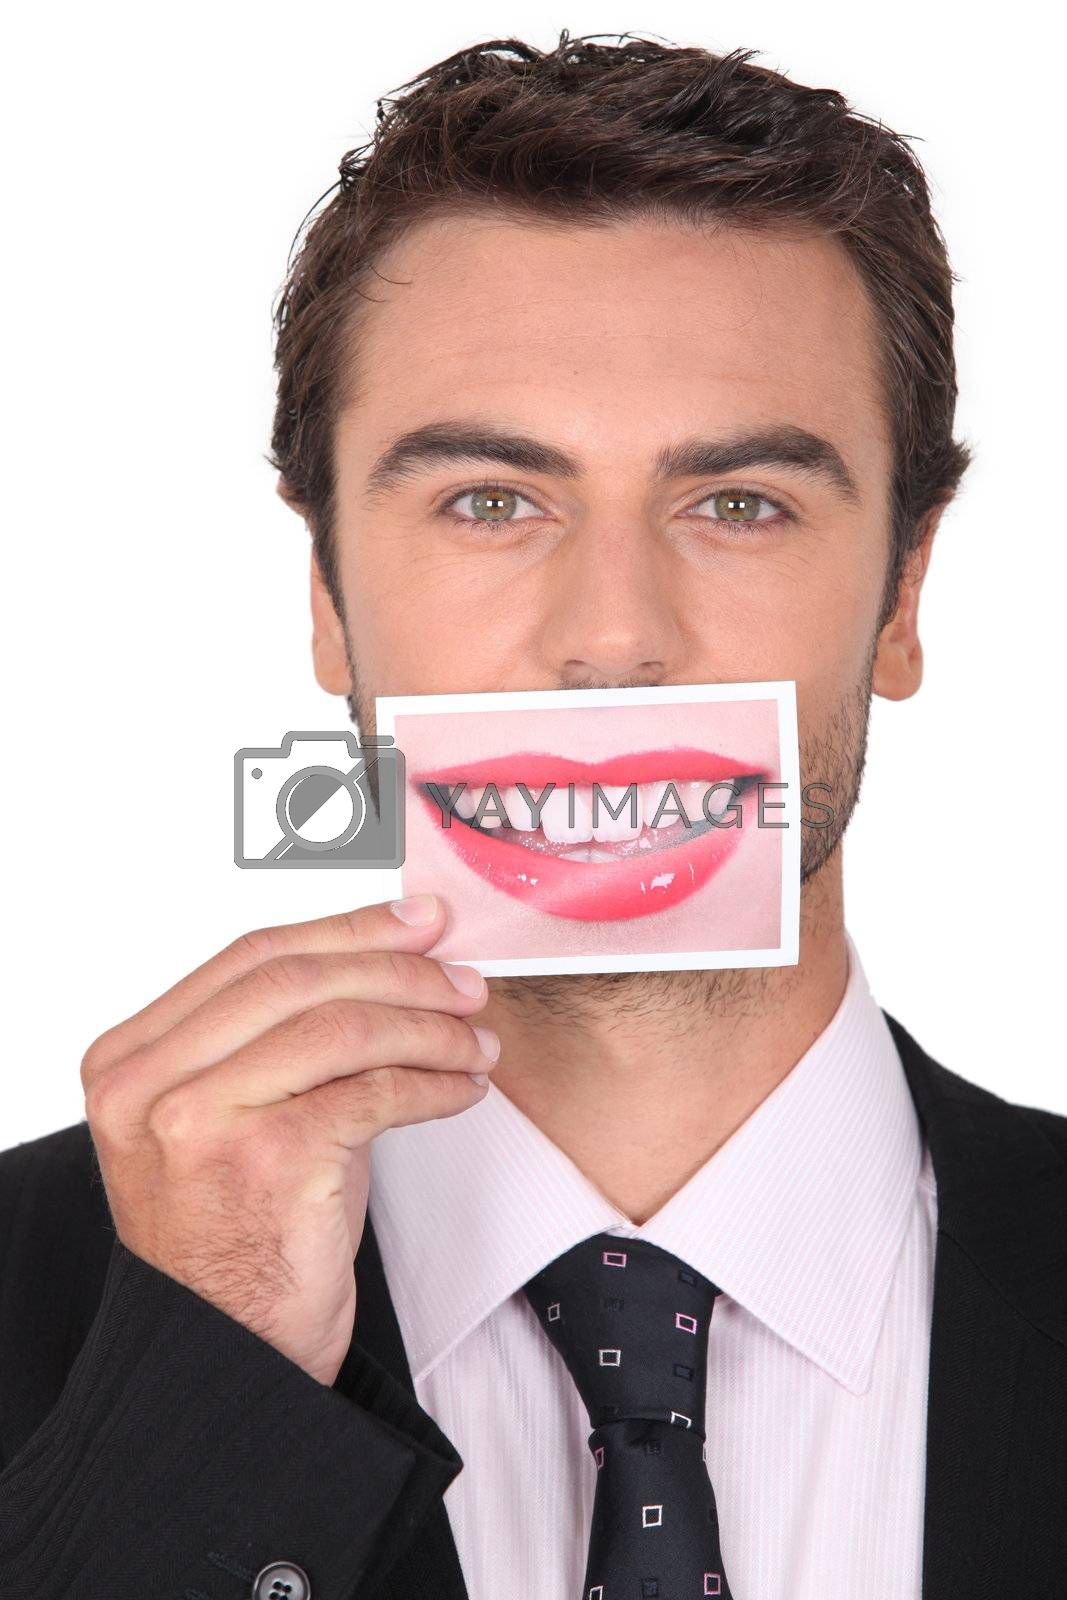 brown-haired young man holding picture of female mouth smiling Dubbroca_Joffrey_160410